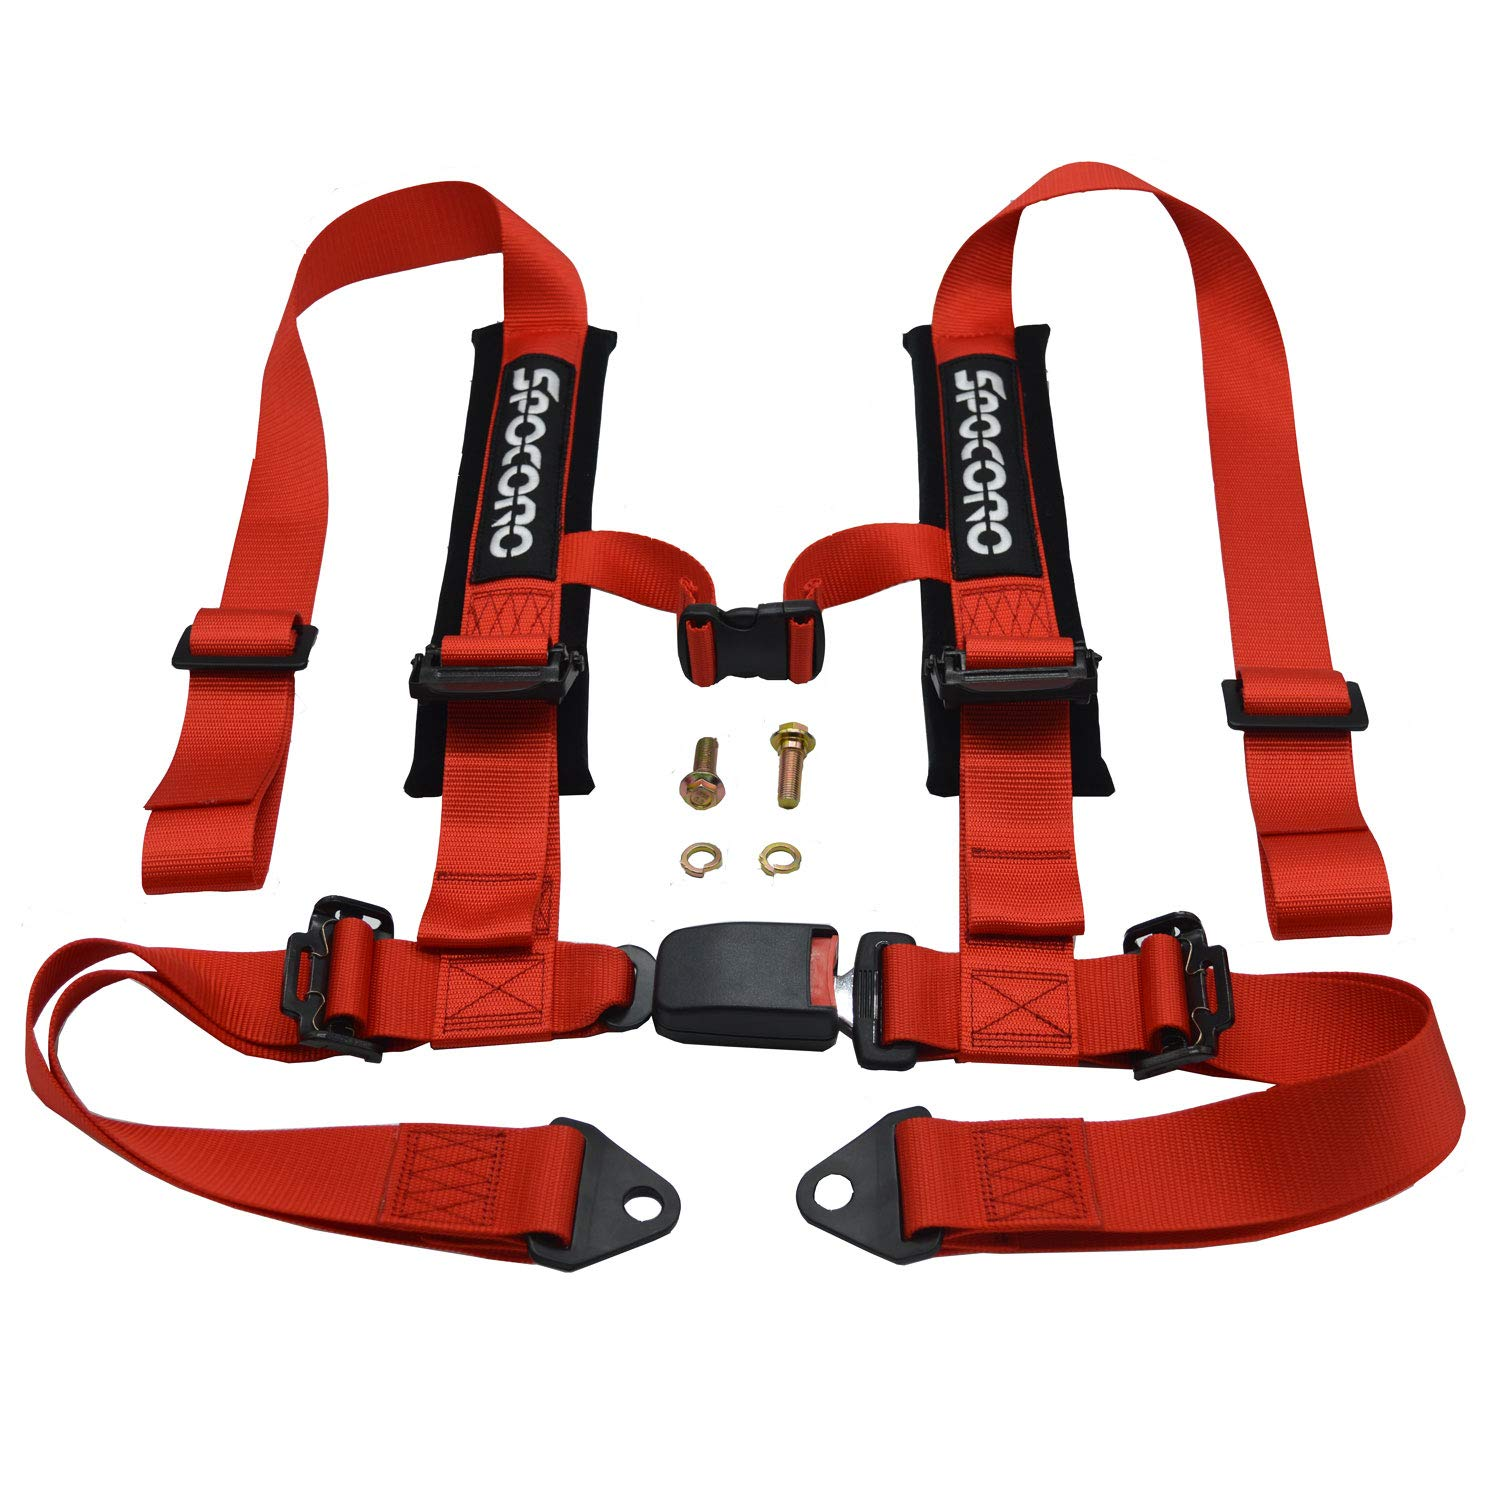 Spocoro RH-0204RD-BK-1 4 Point Racing Safety Harness with Ultra Soft Shoulder Pads Buckle with 2''Straps, Red(Pack of 1)